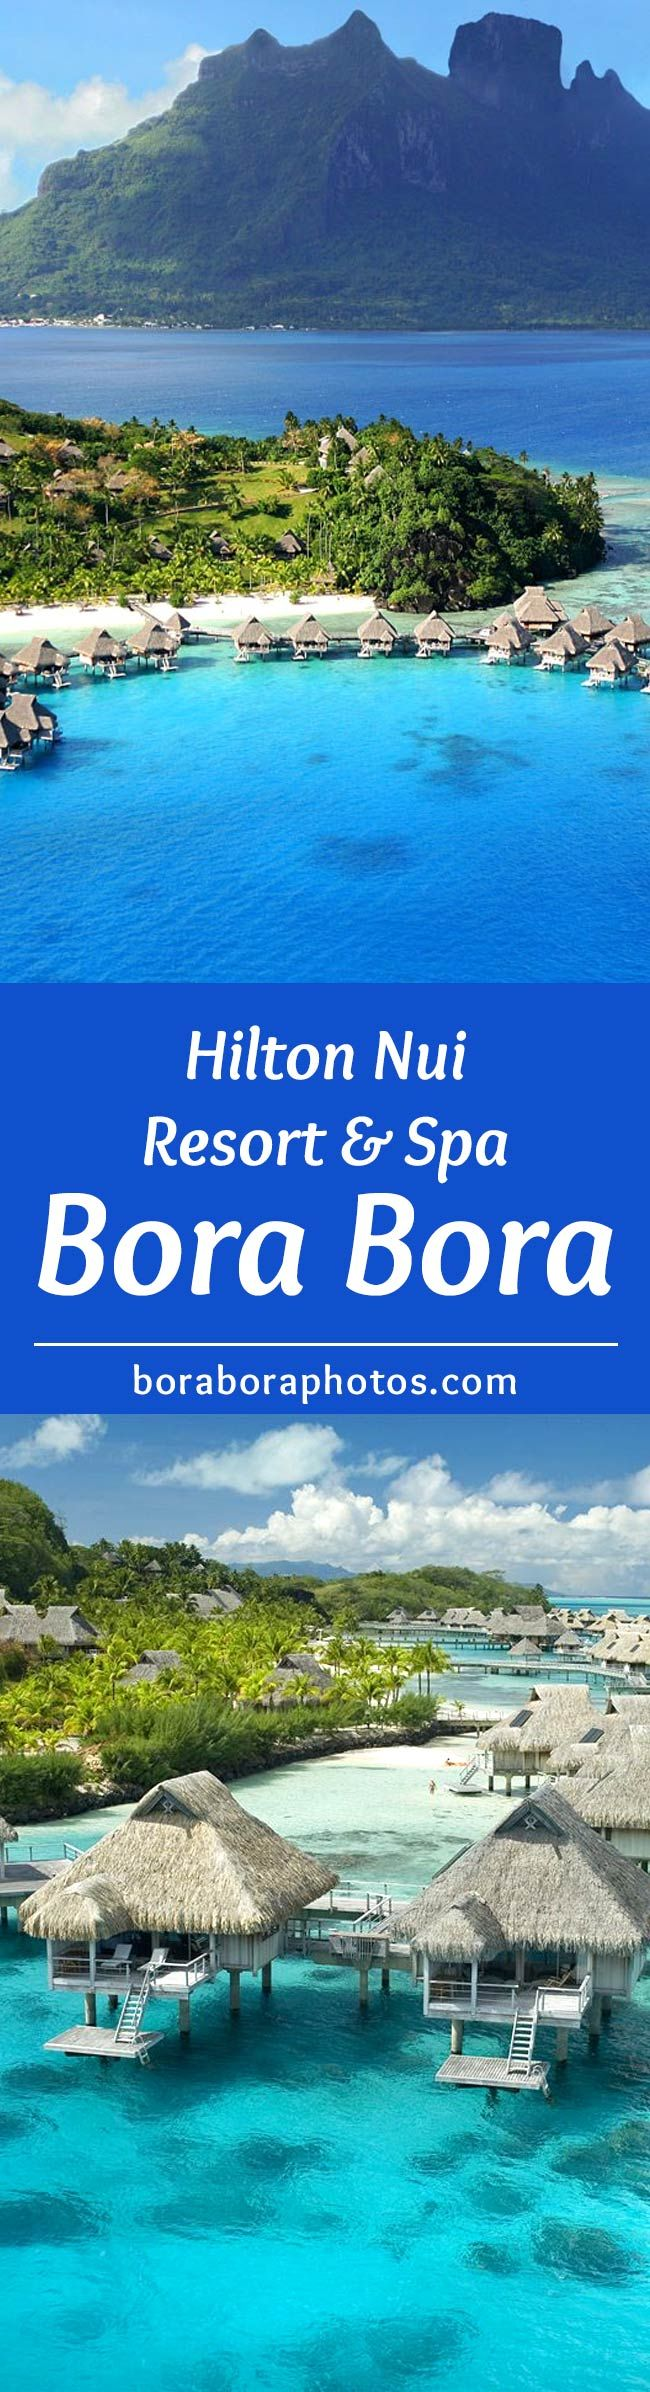 Hilton Nui Resort - Nestled on a white beach and blue lagoon, this Bora Bora Hotel & Spa a is an idyllic honeymoon retreat. Located on the French Polynesia group of islands in the Pacific Ocean. via @boraboraphotos